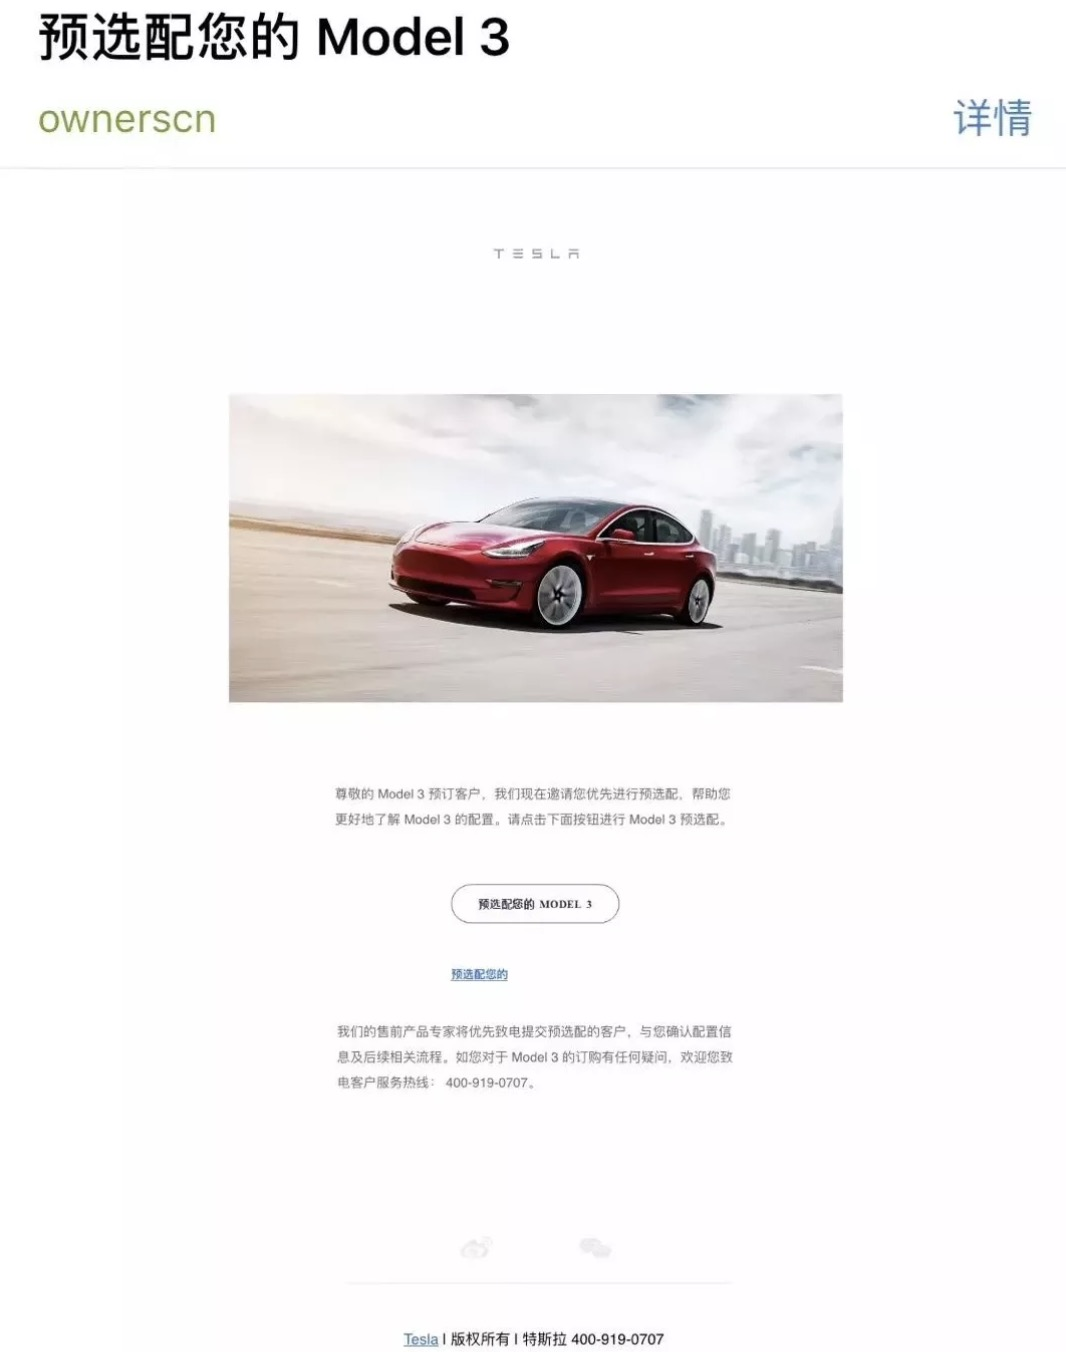 Tesla starts Model 3 orders in China, unveils new wheel